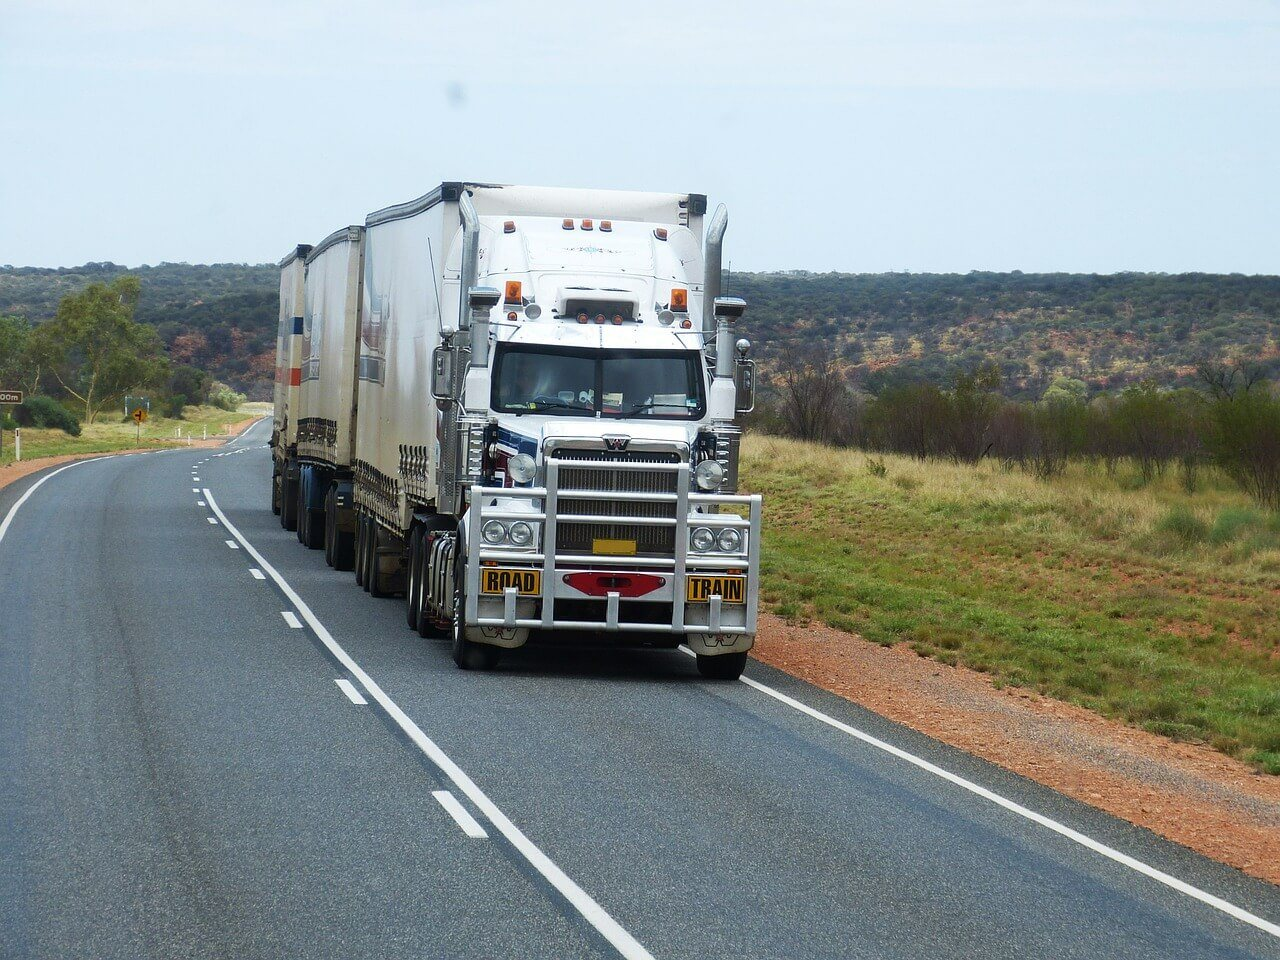 How Dangerous is Fatigue for Truck Drivers?